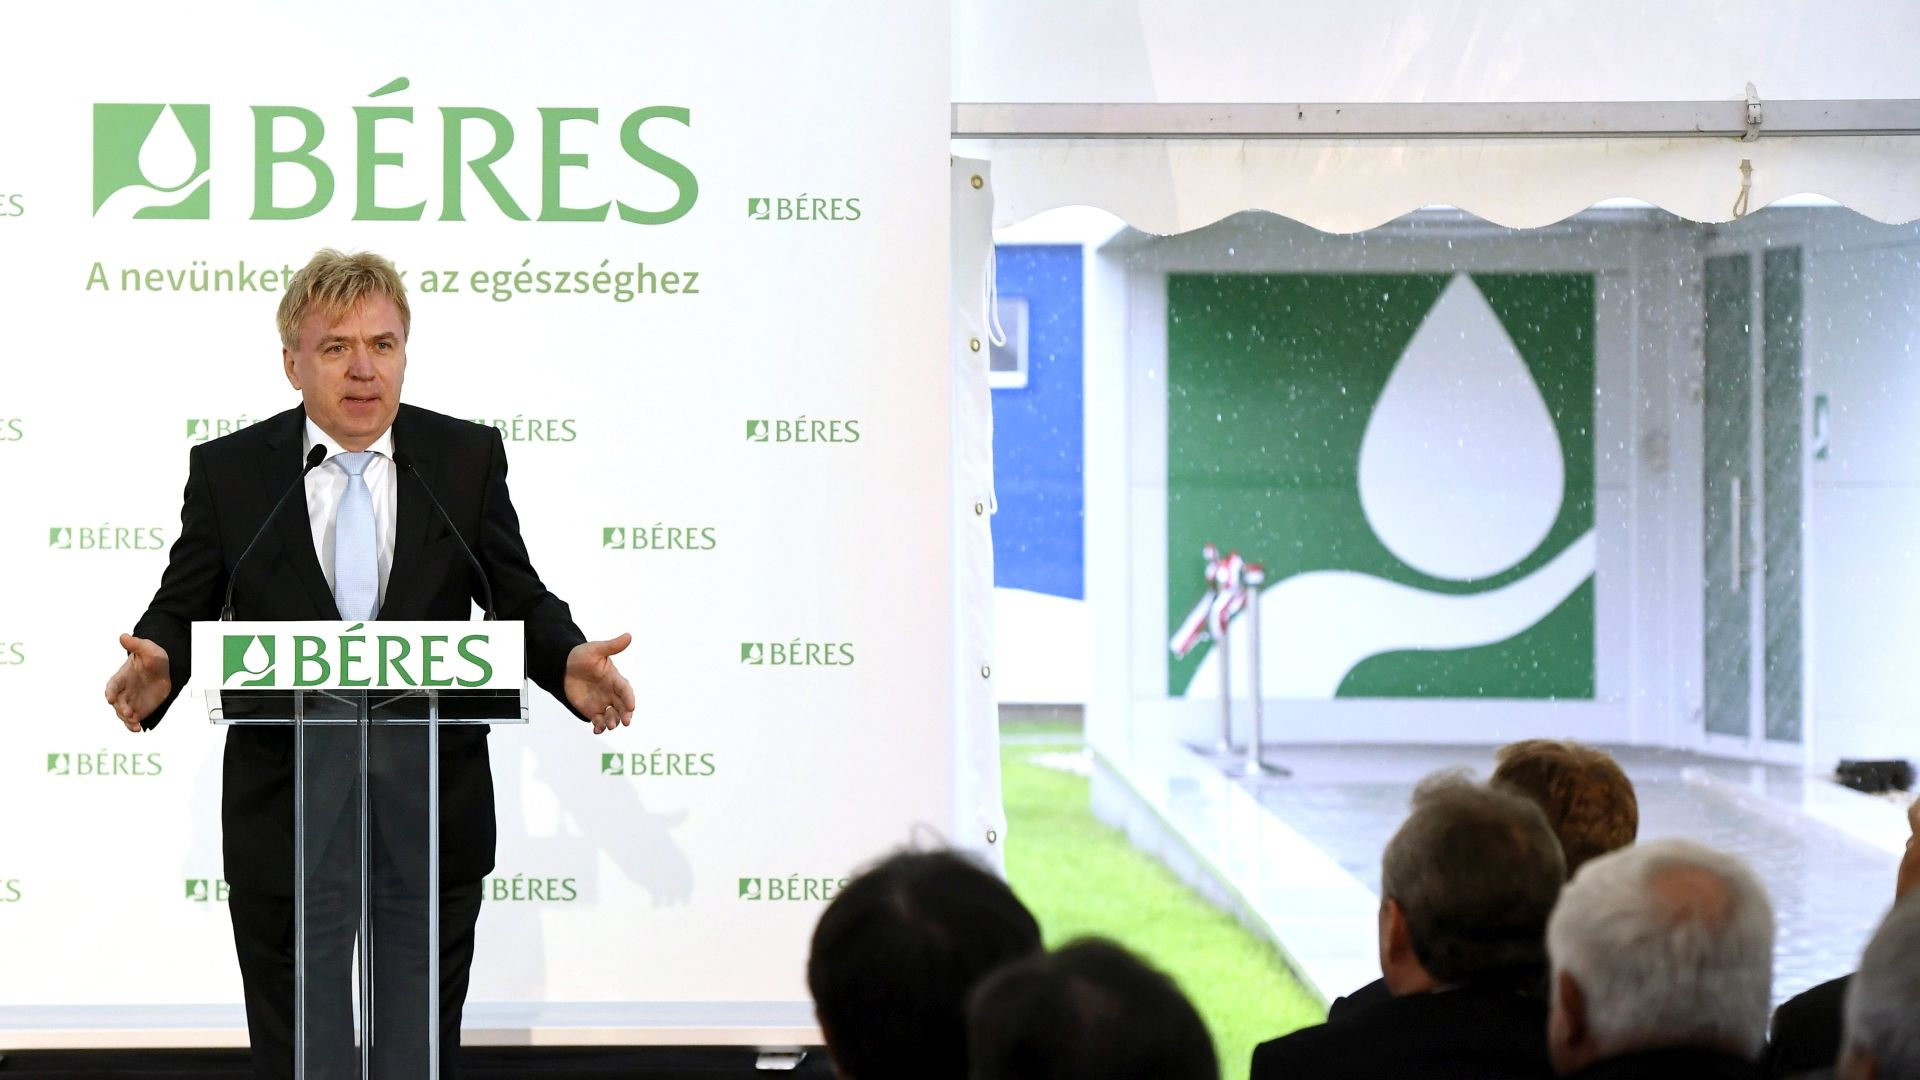 The complex development of the Béres pharmaceutical factory has been completed in Szolnok